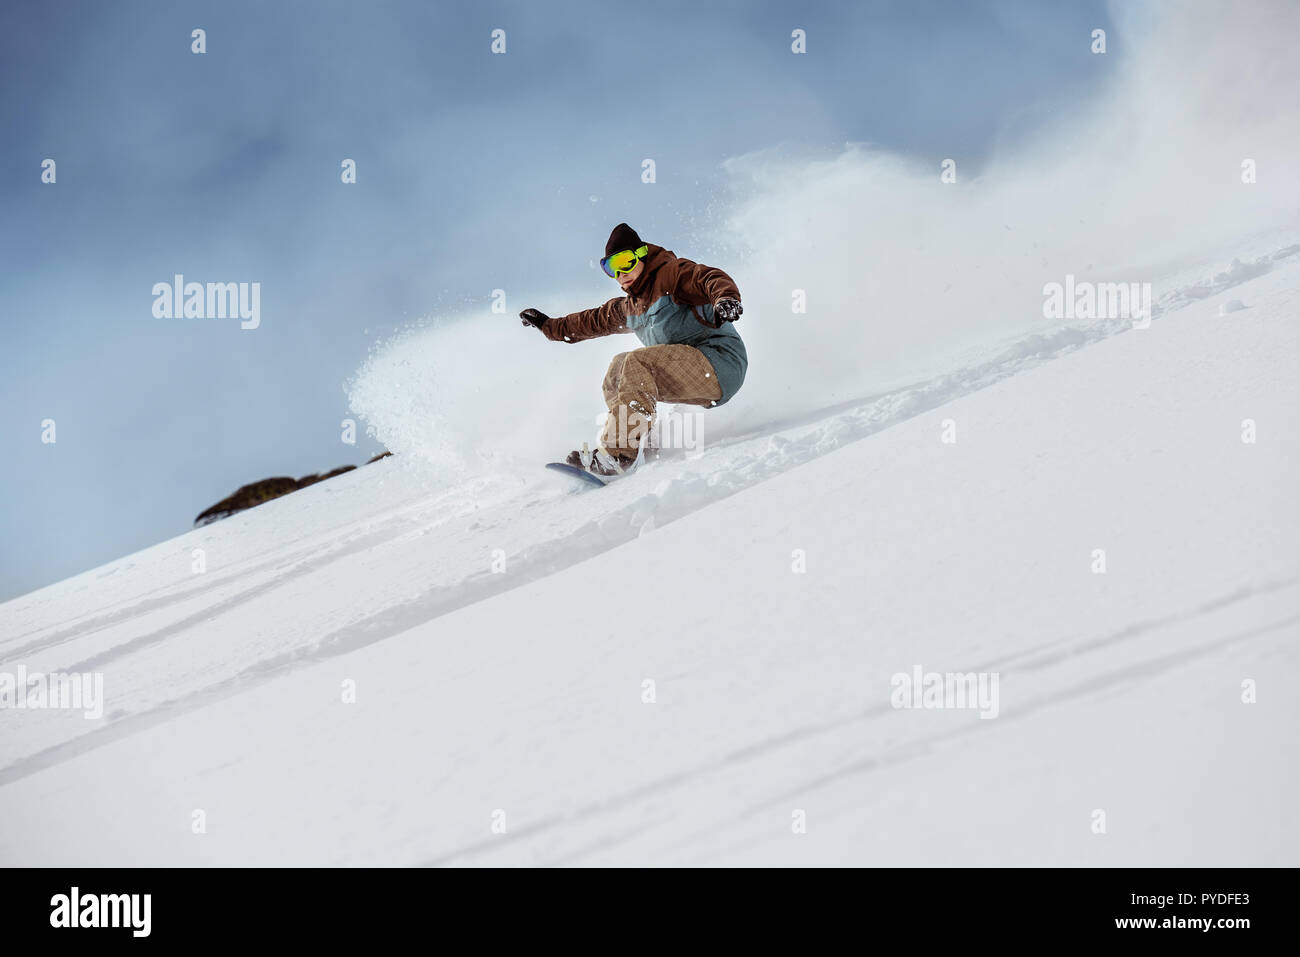 Snowboarder downhill at offpiste slope. Freeride or backcountry snowboarding concept - Stock Image